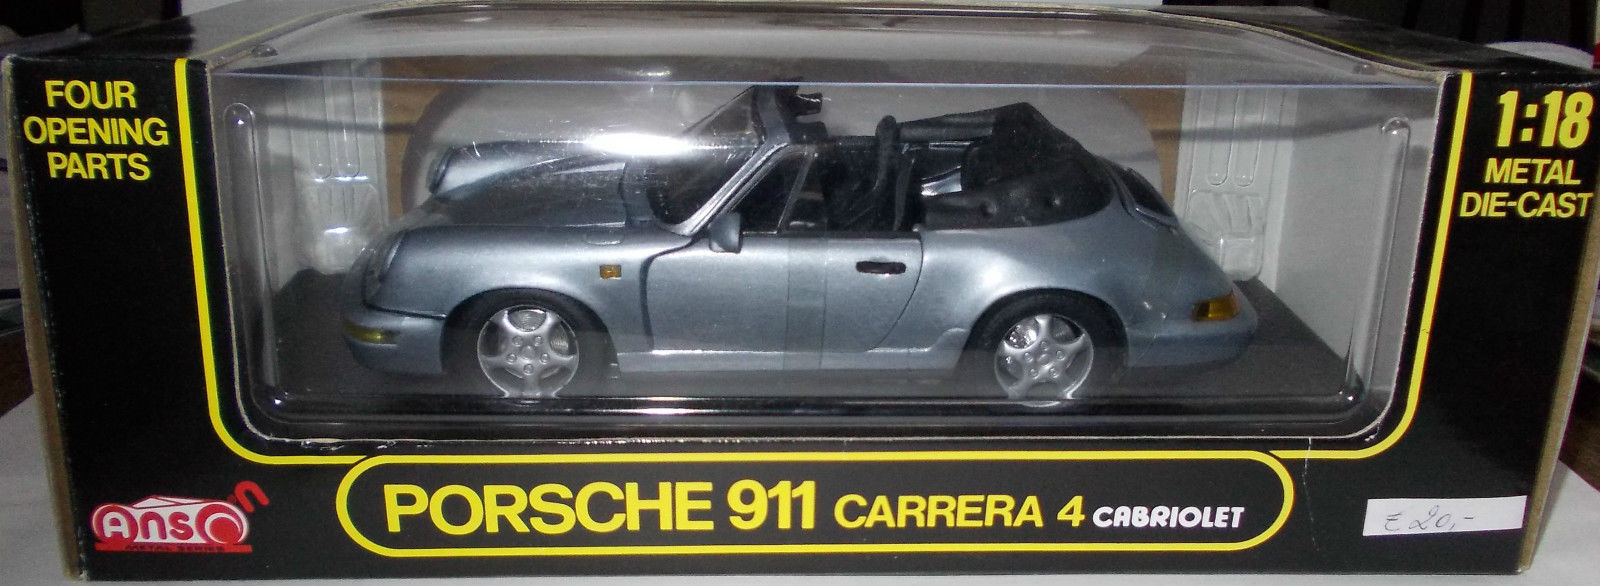 Anson: 1992 Porsche 911 C4 Cabriolet - Silver Metallic (30309) in 1:18 scale . Picture provided by Wim, 2014-10-29 16:40:28